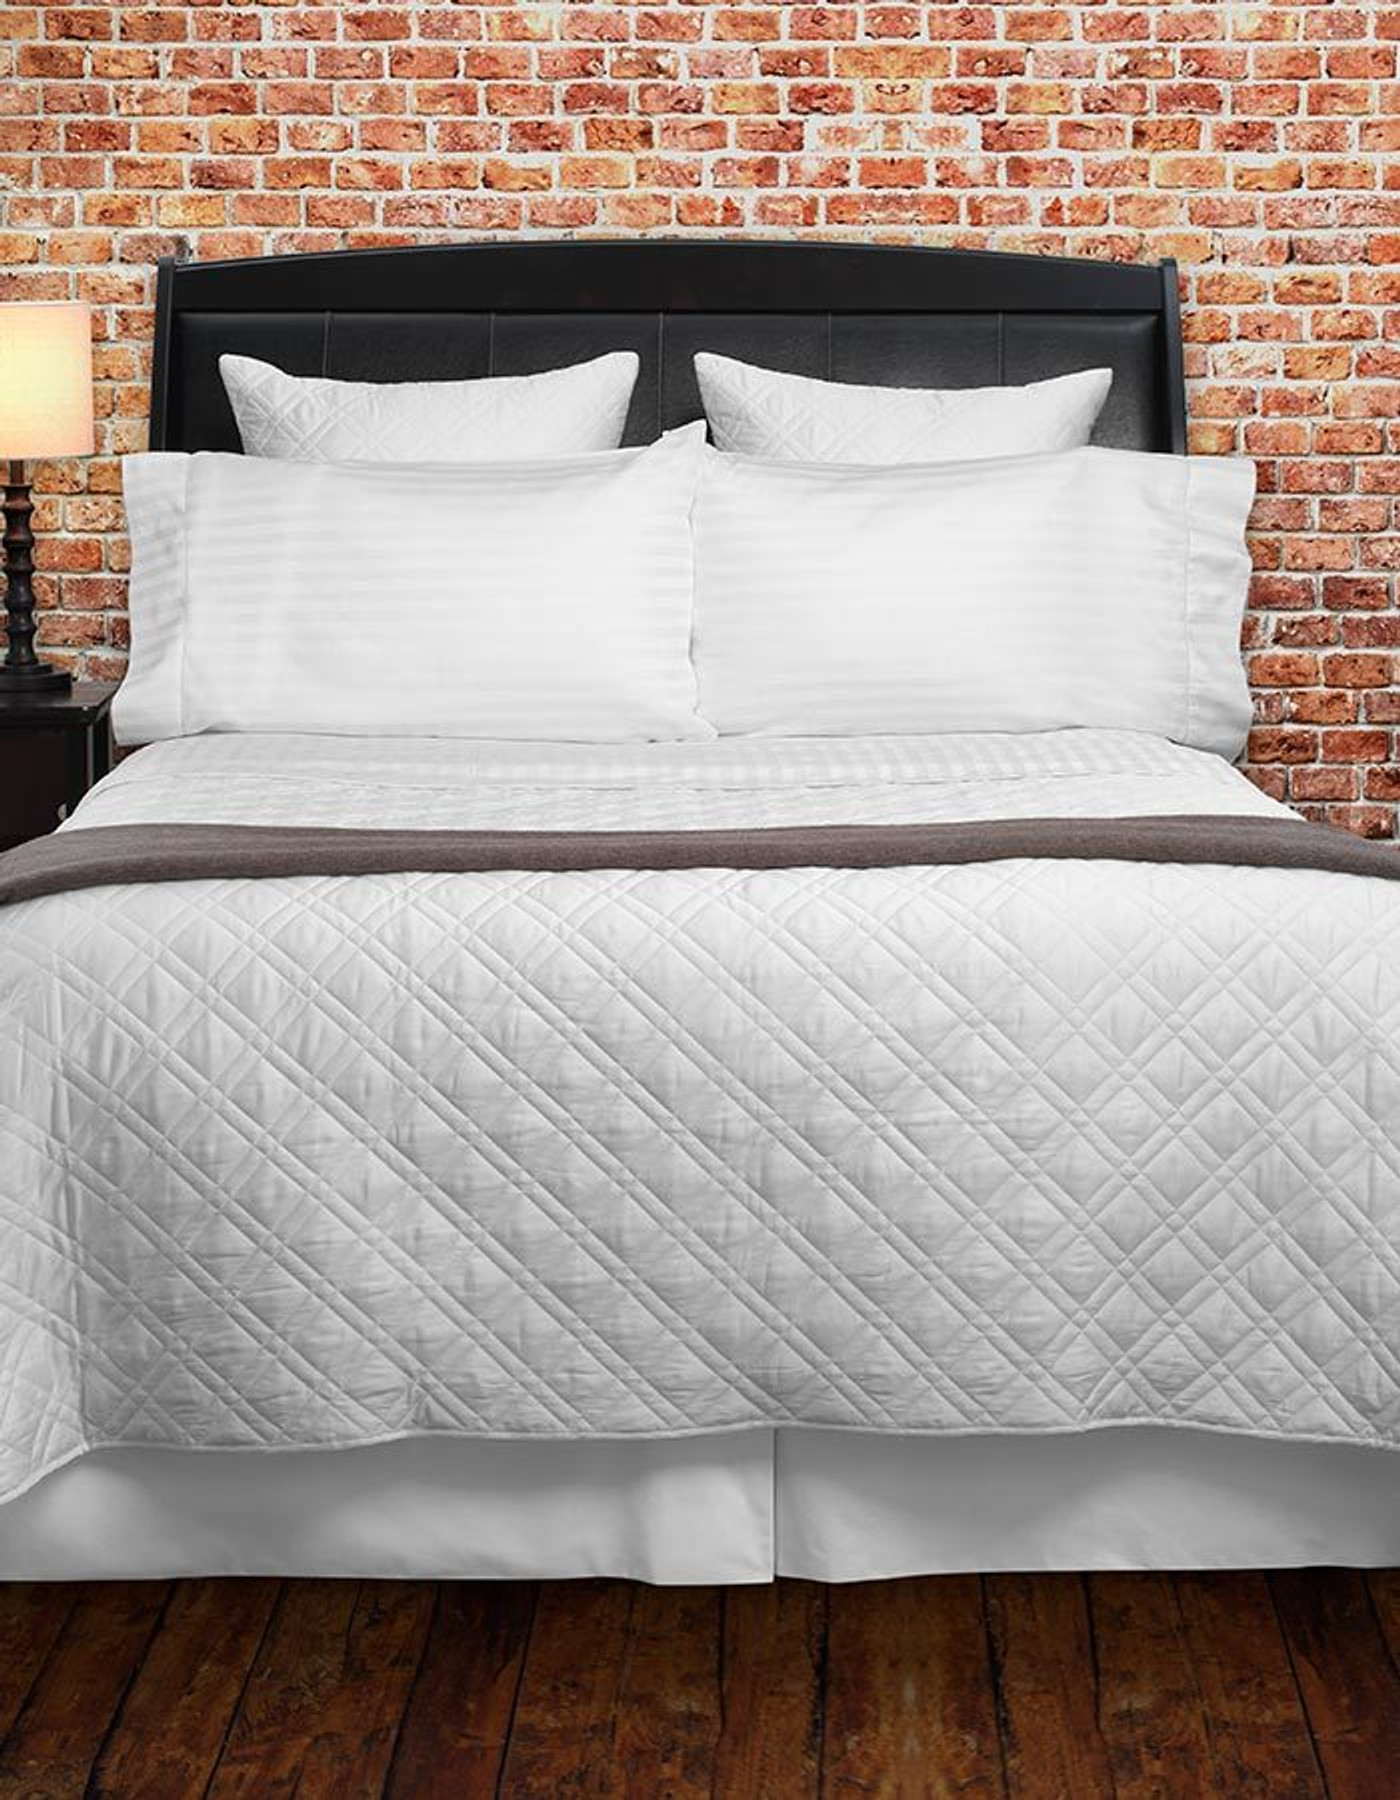 Quilted Coverlets King & Queen Size